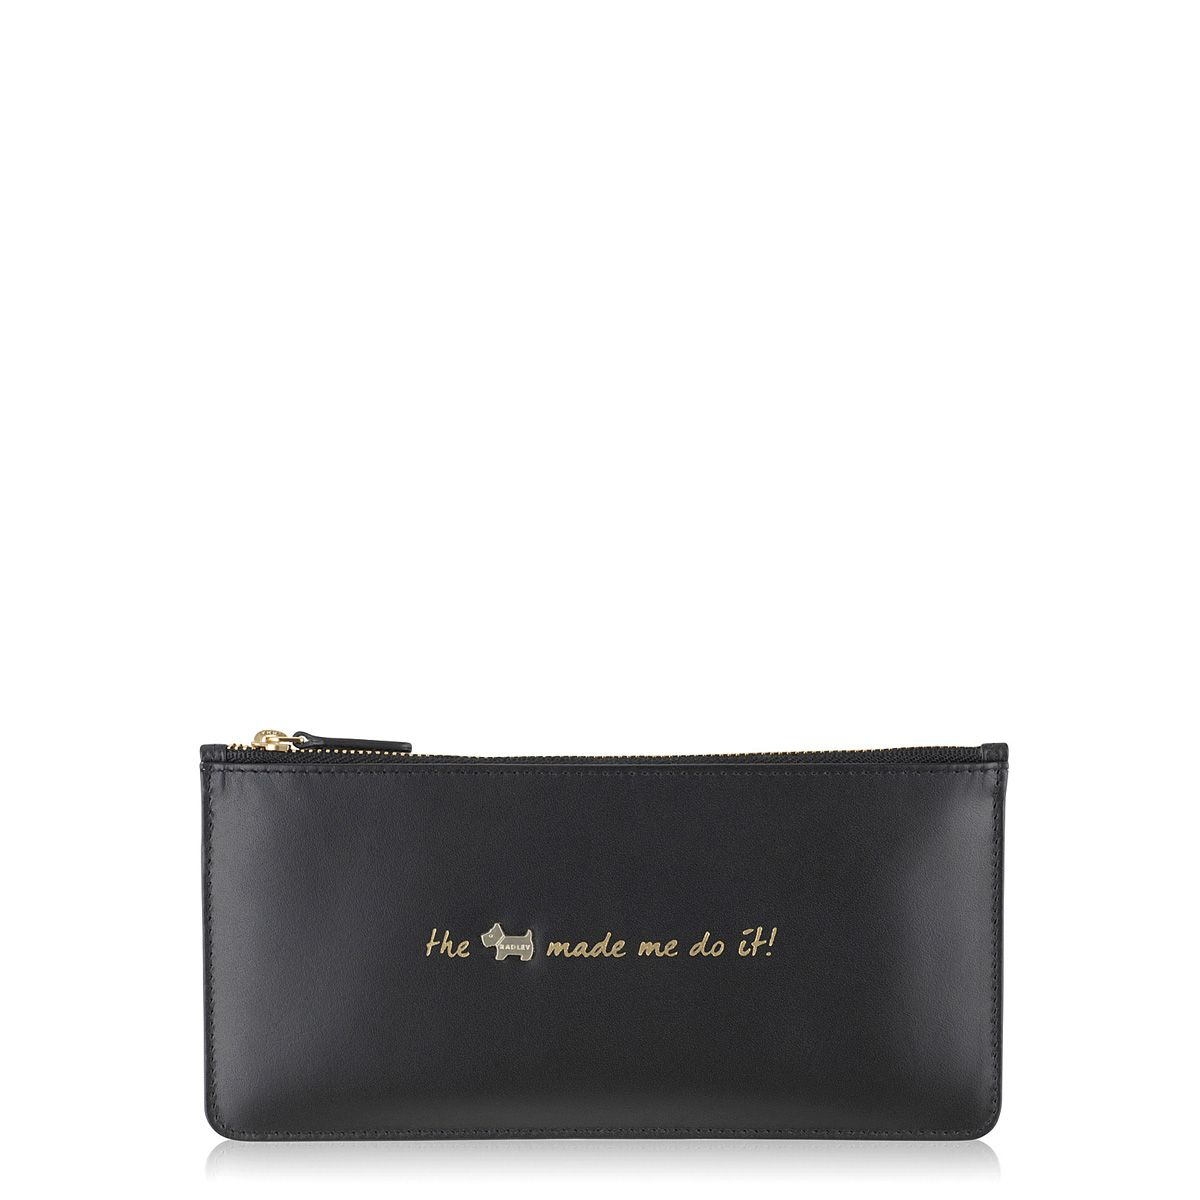 Radley Excuses large zip pouch purse Black